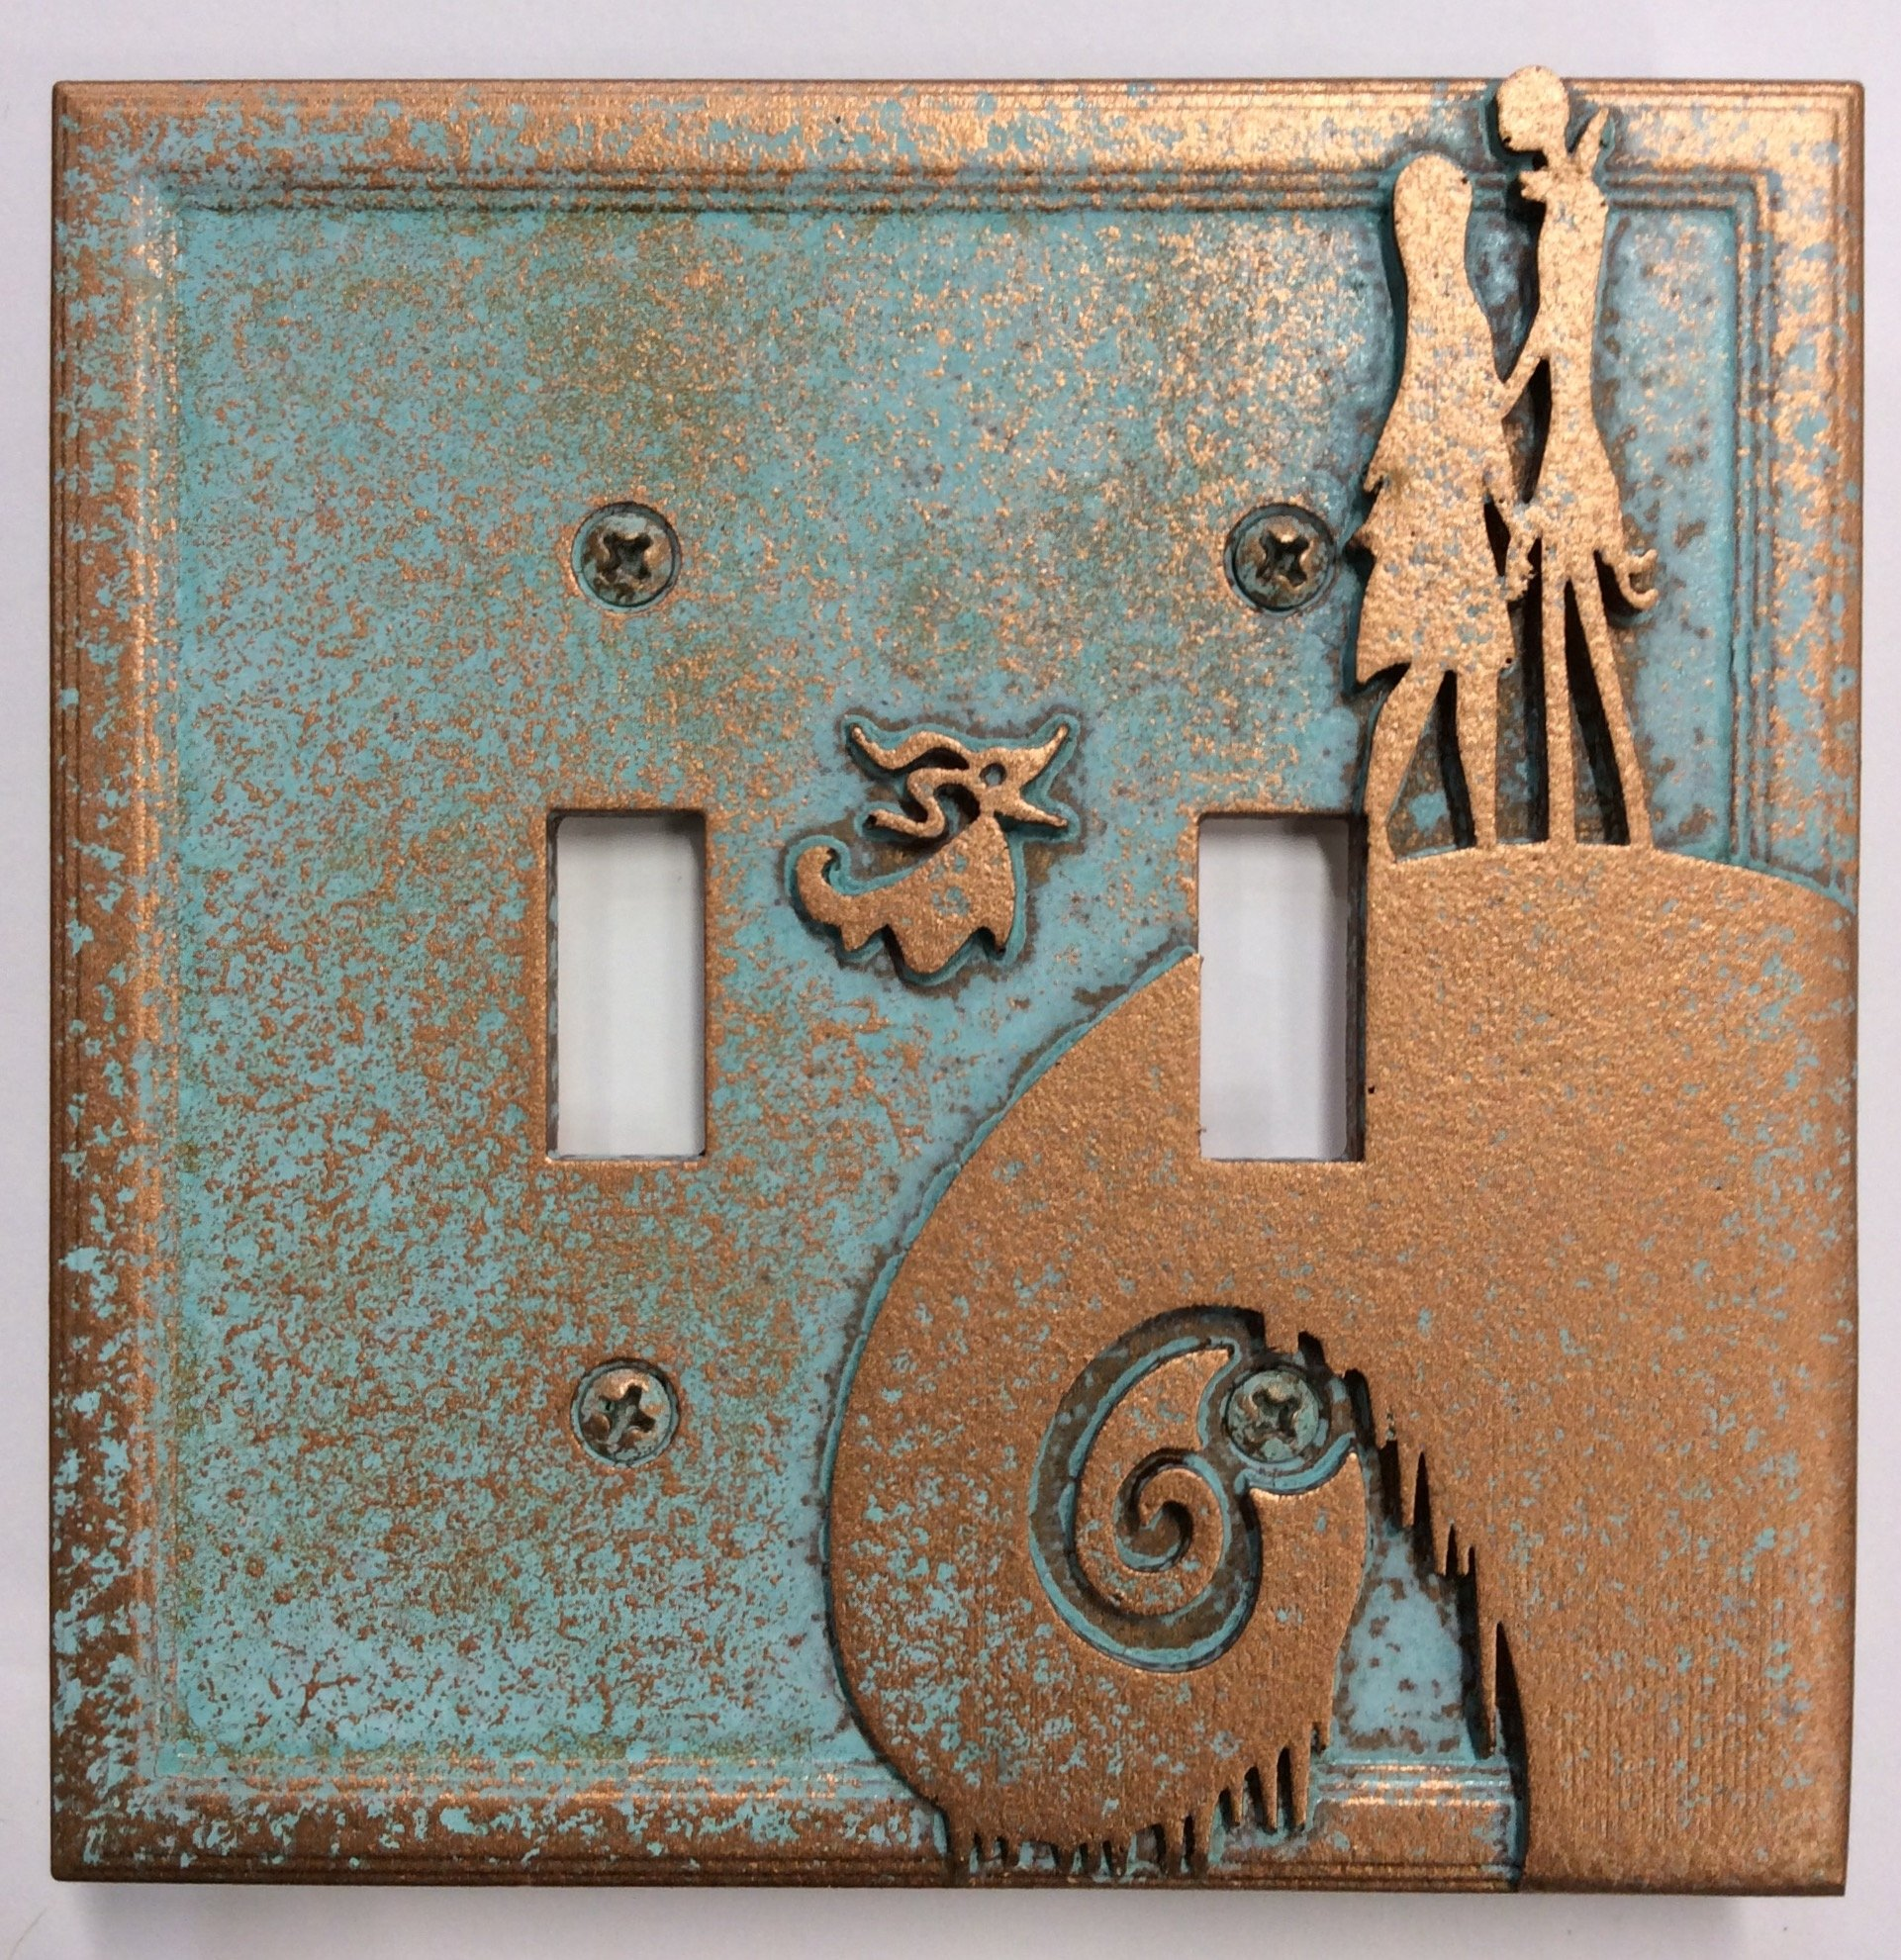 Nightmare Before Christmas - Double Light Switch Cover (Aged Patina)